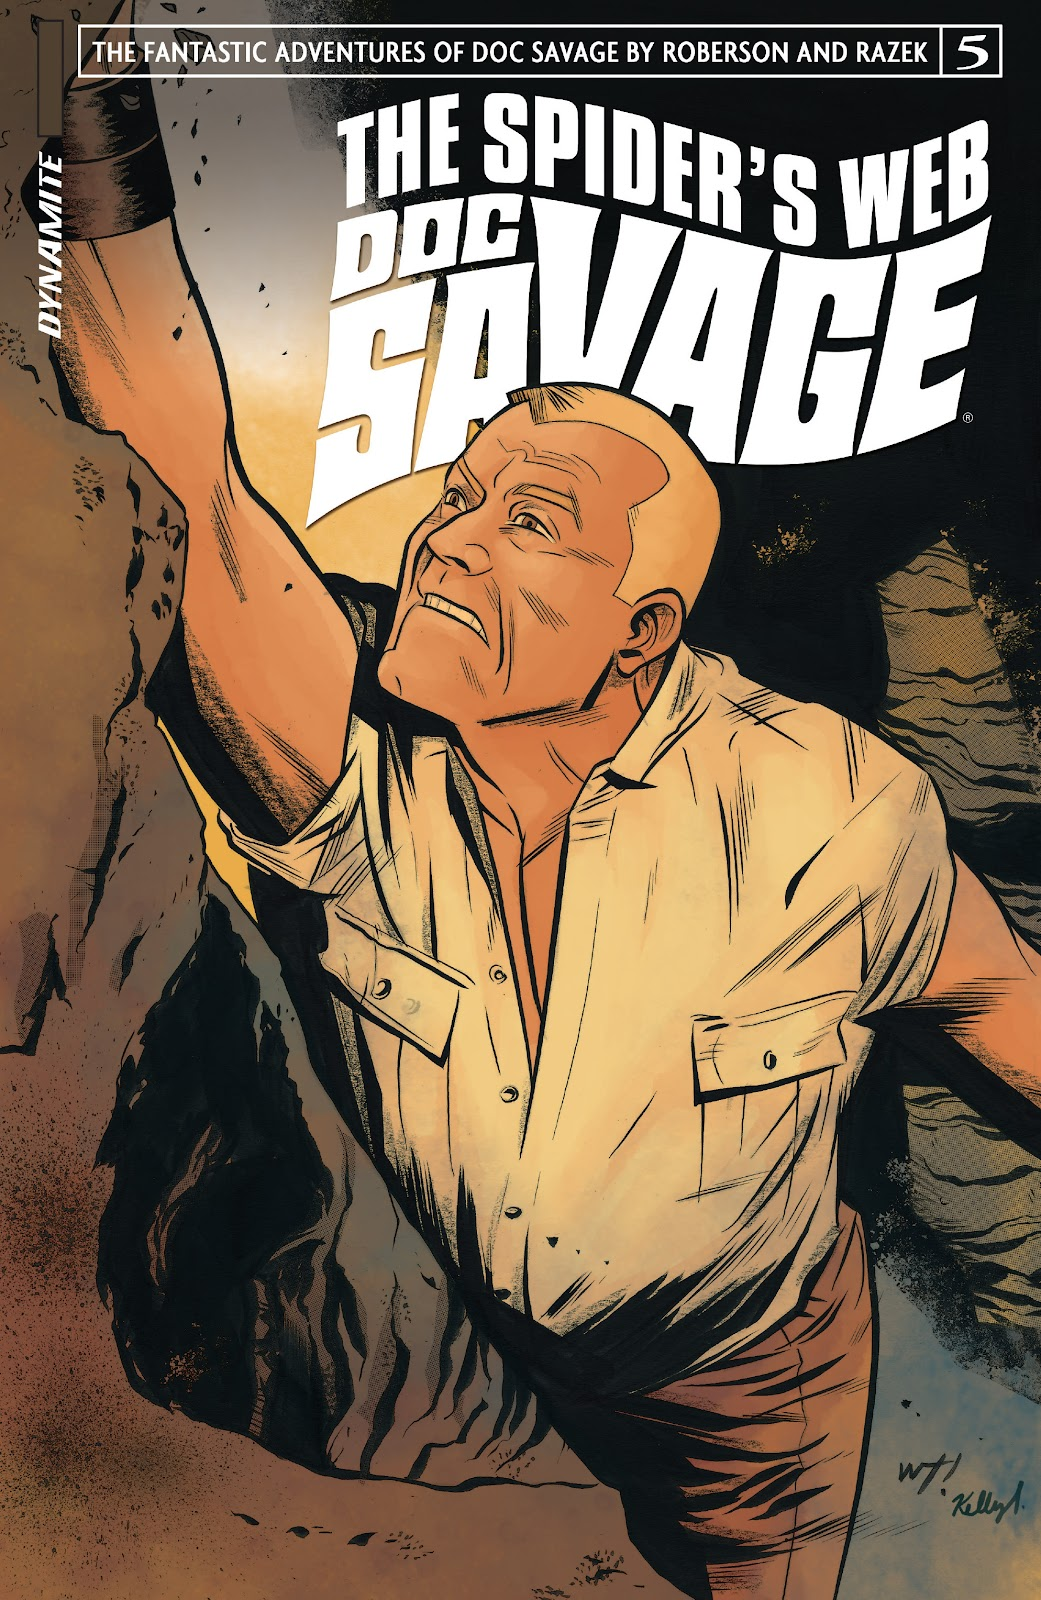 Doc Savage: The Spiders Web issue 5 - Page 1